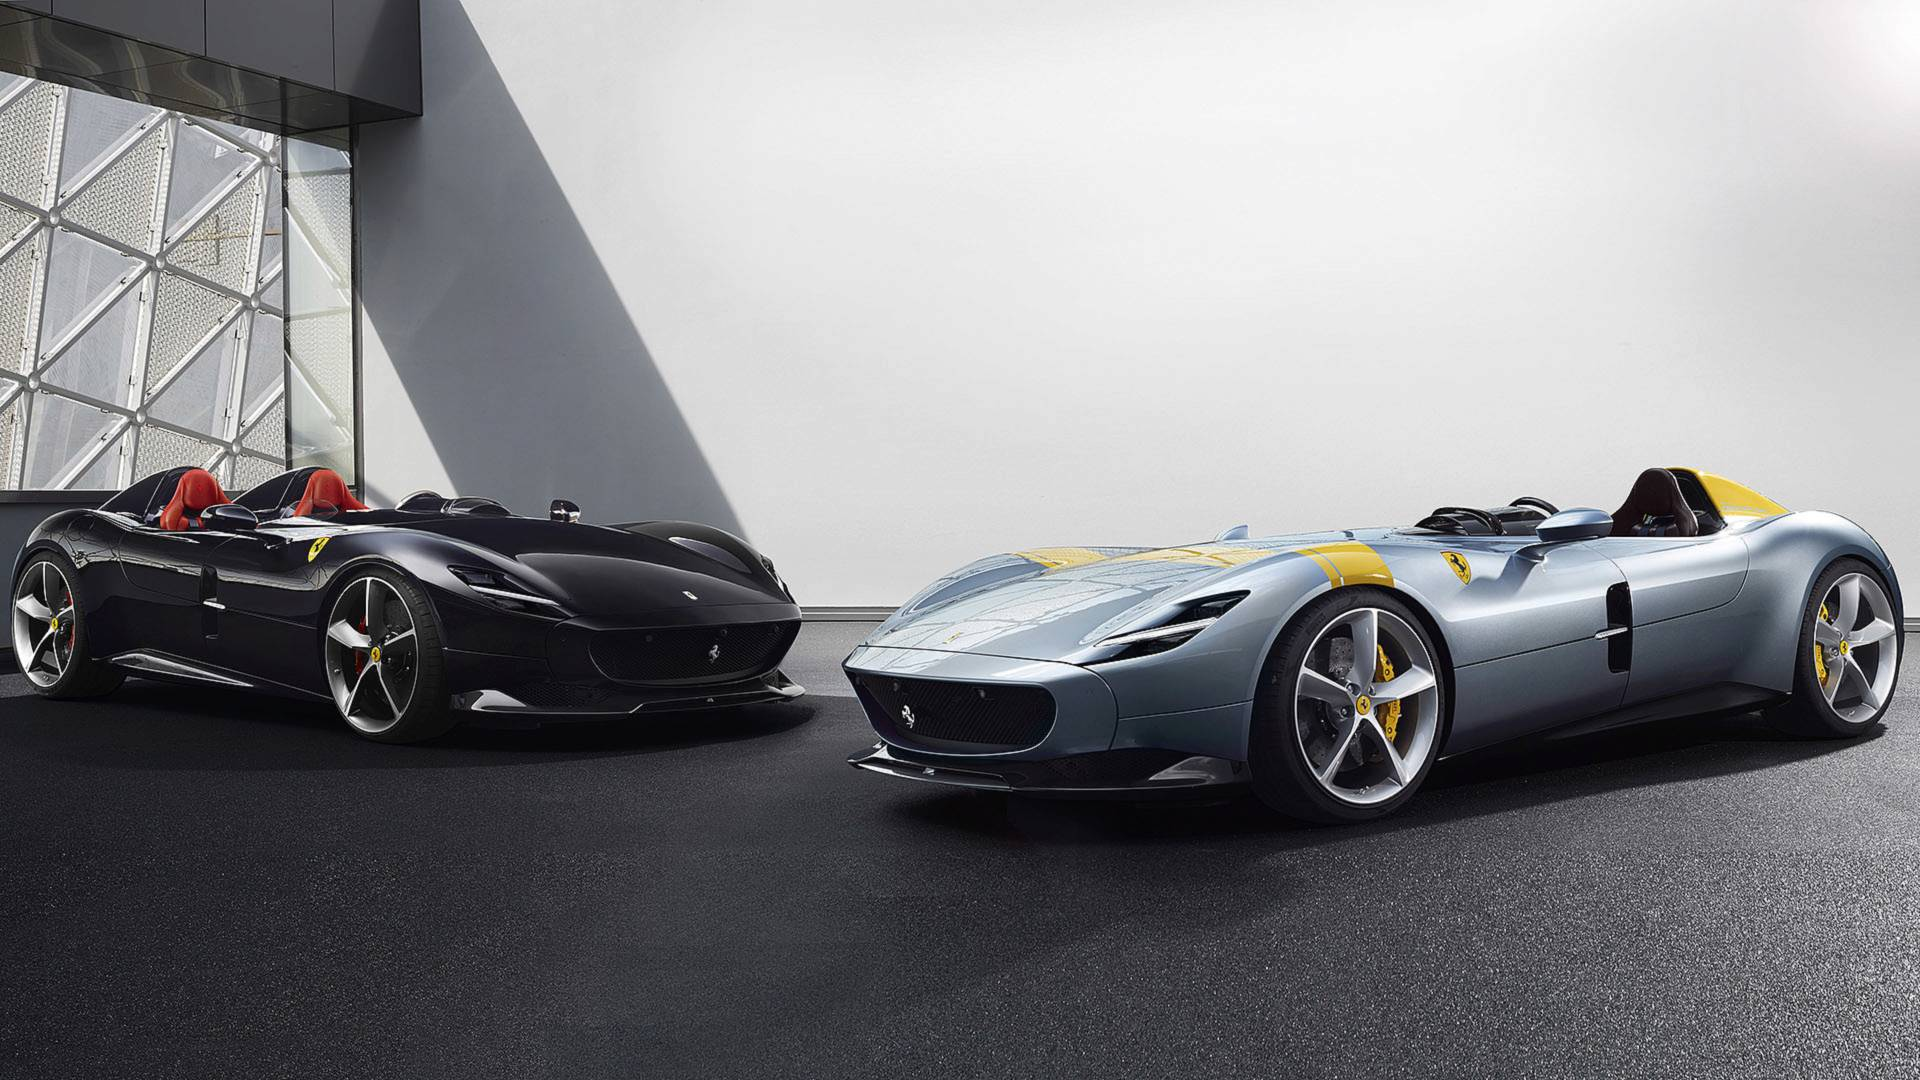 aa3120e082a99d Ferrari Reveals Limited-Edition Monza SP1 And SP2 Speedsters